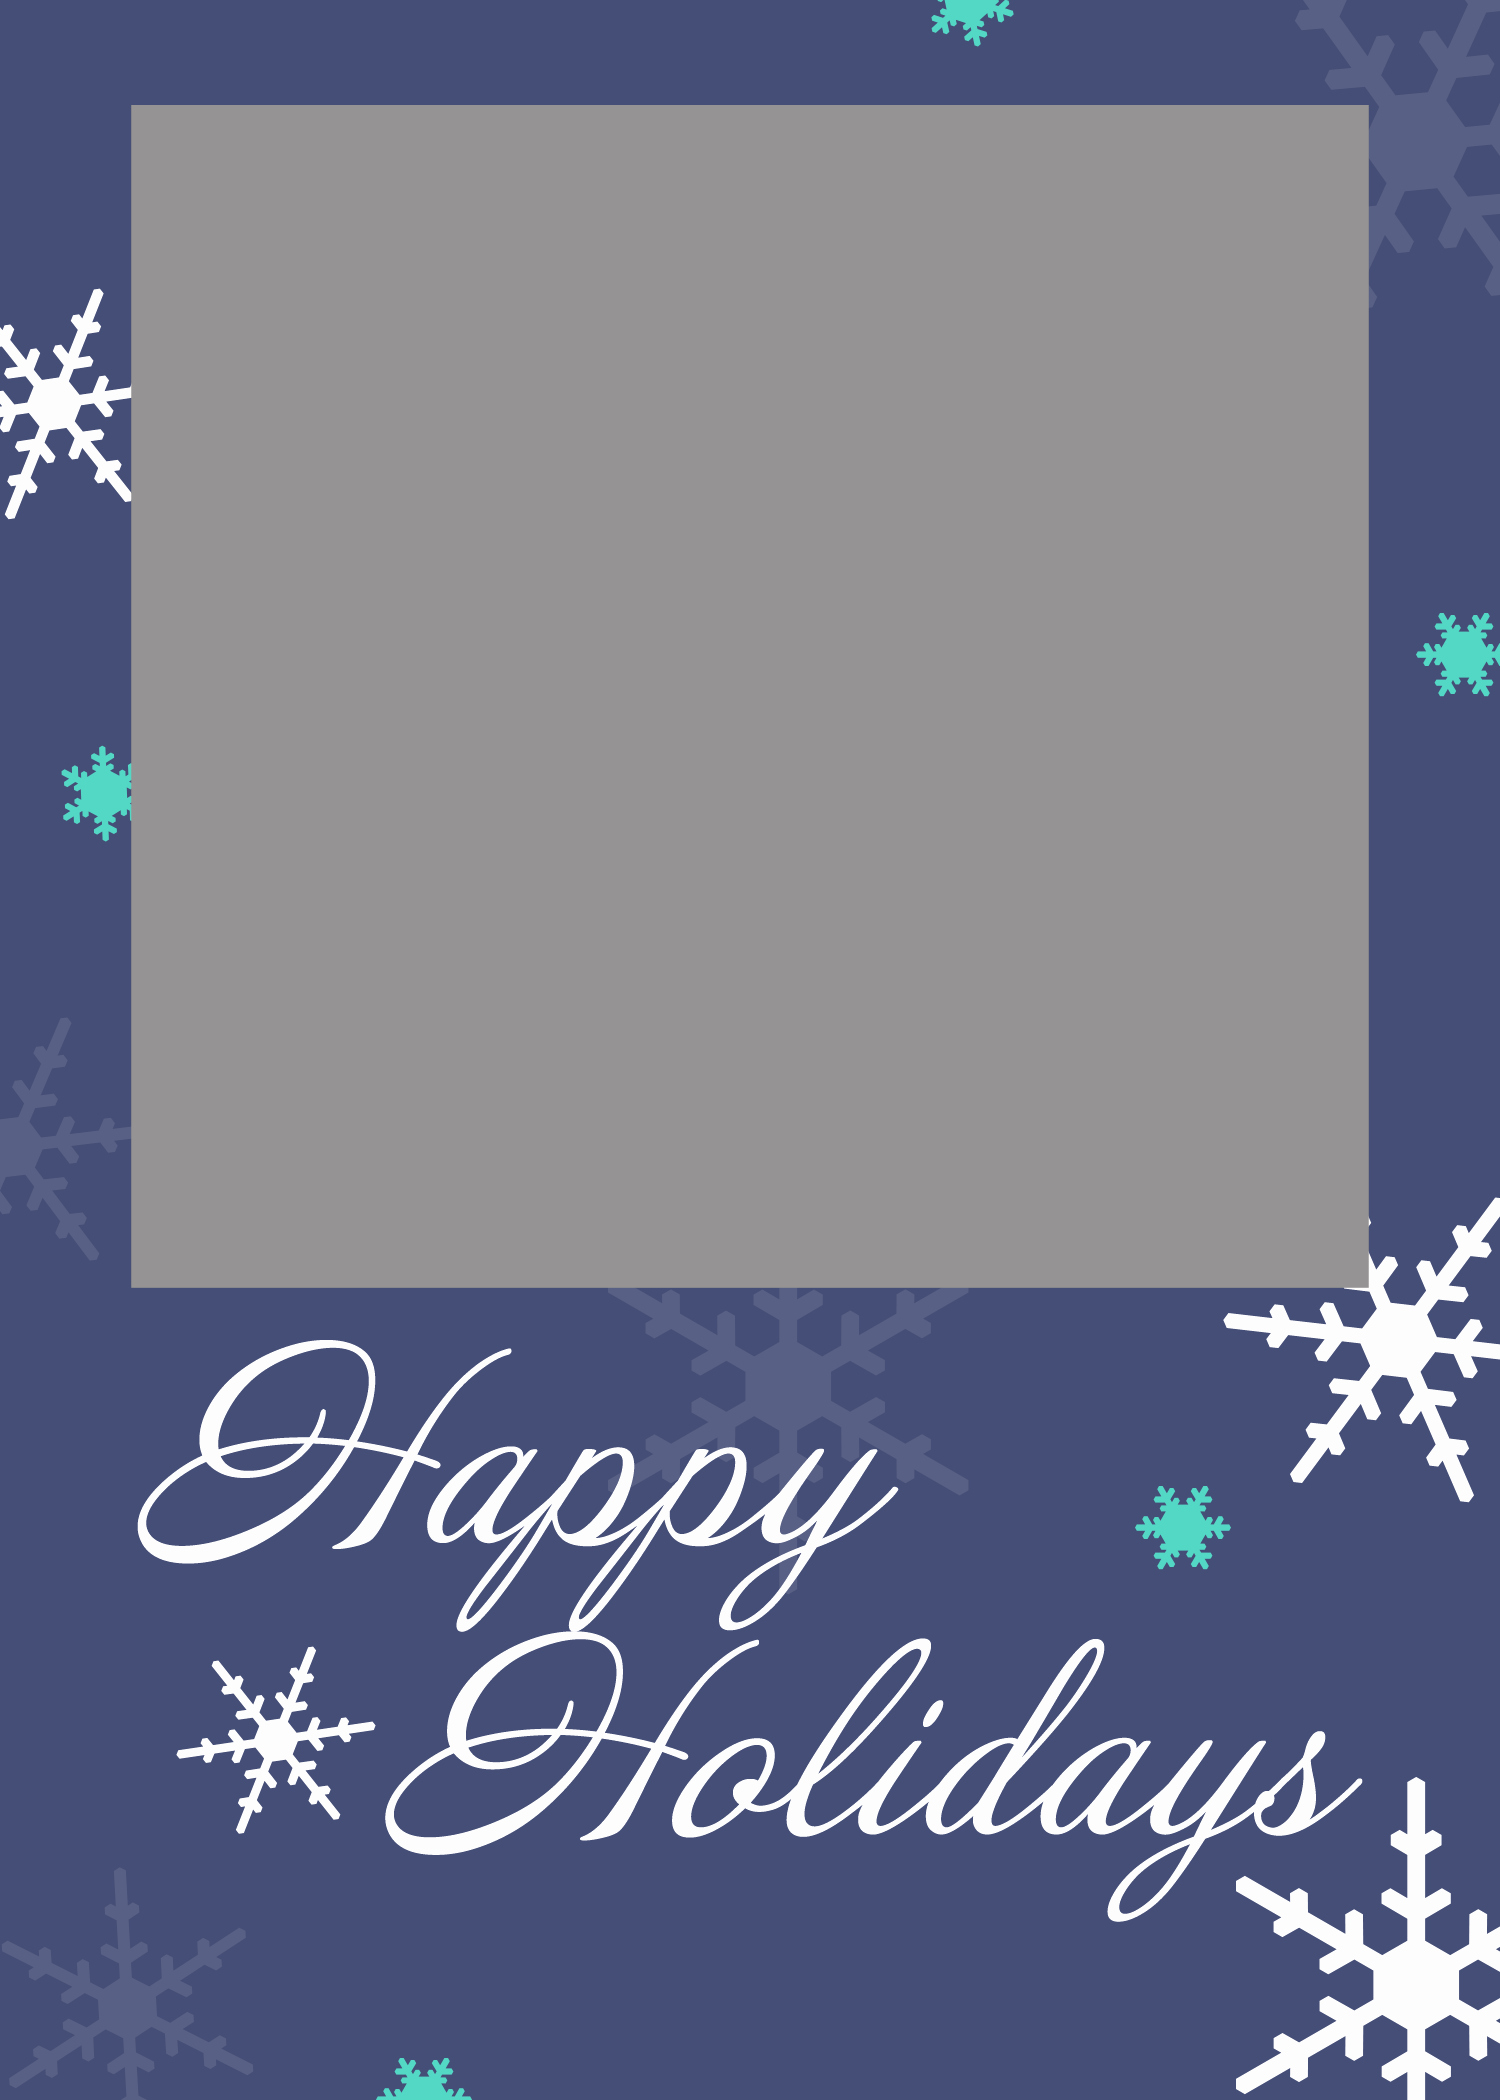 Christmas Templates to Print Luxury Free Christmas Card Templates